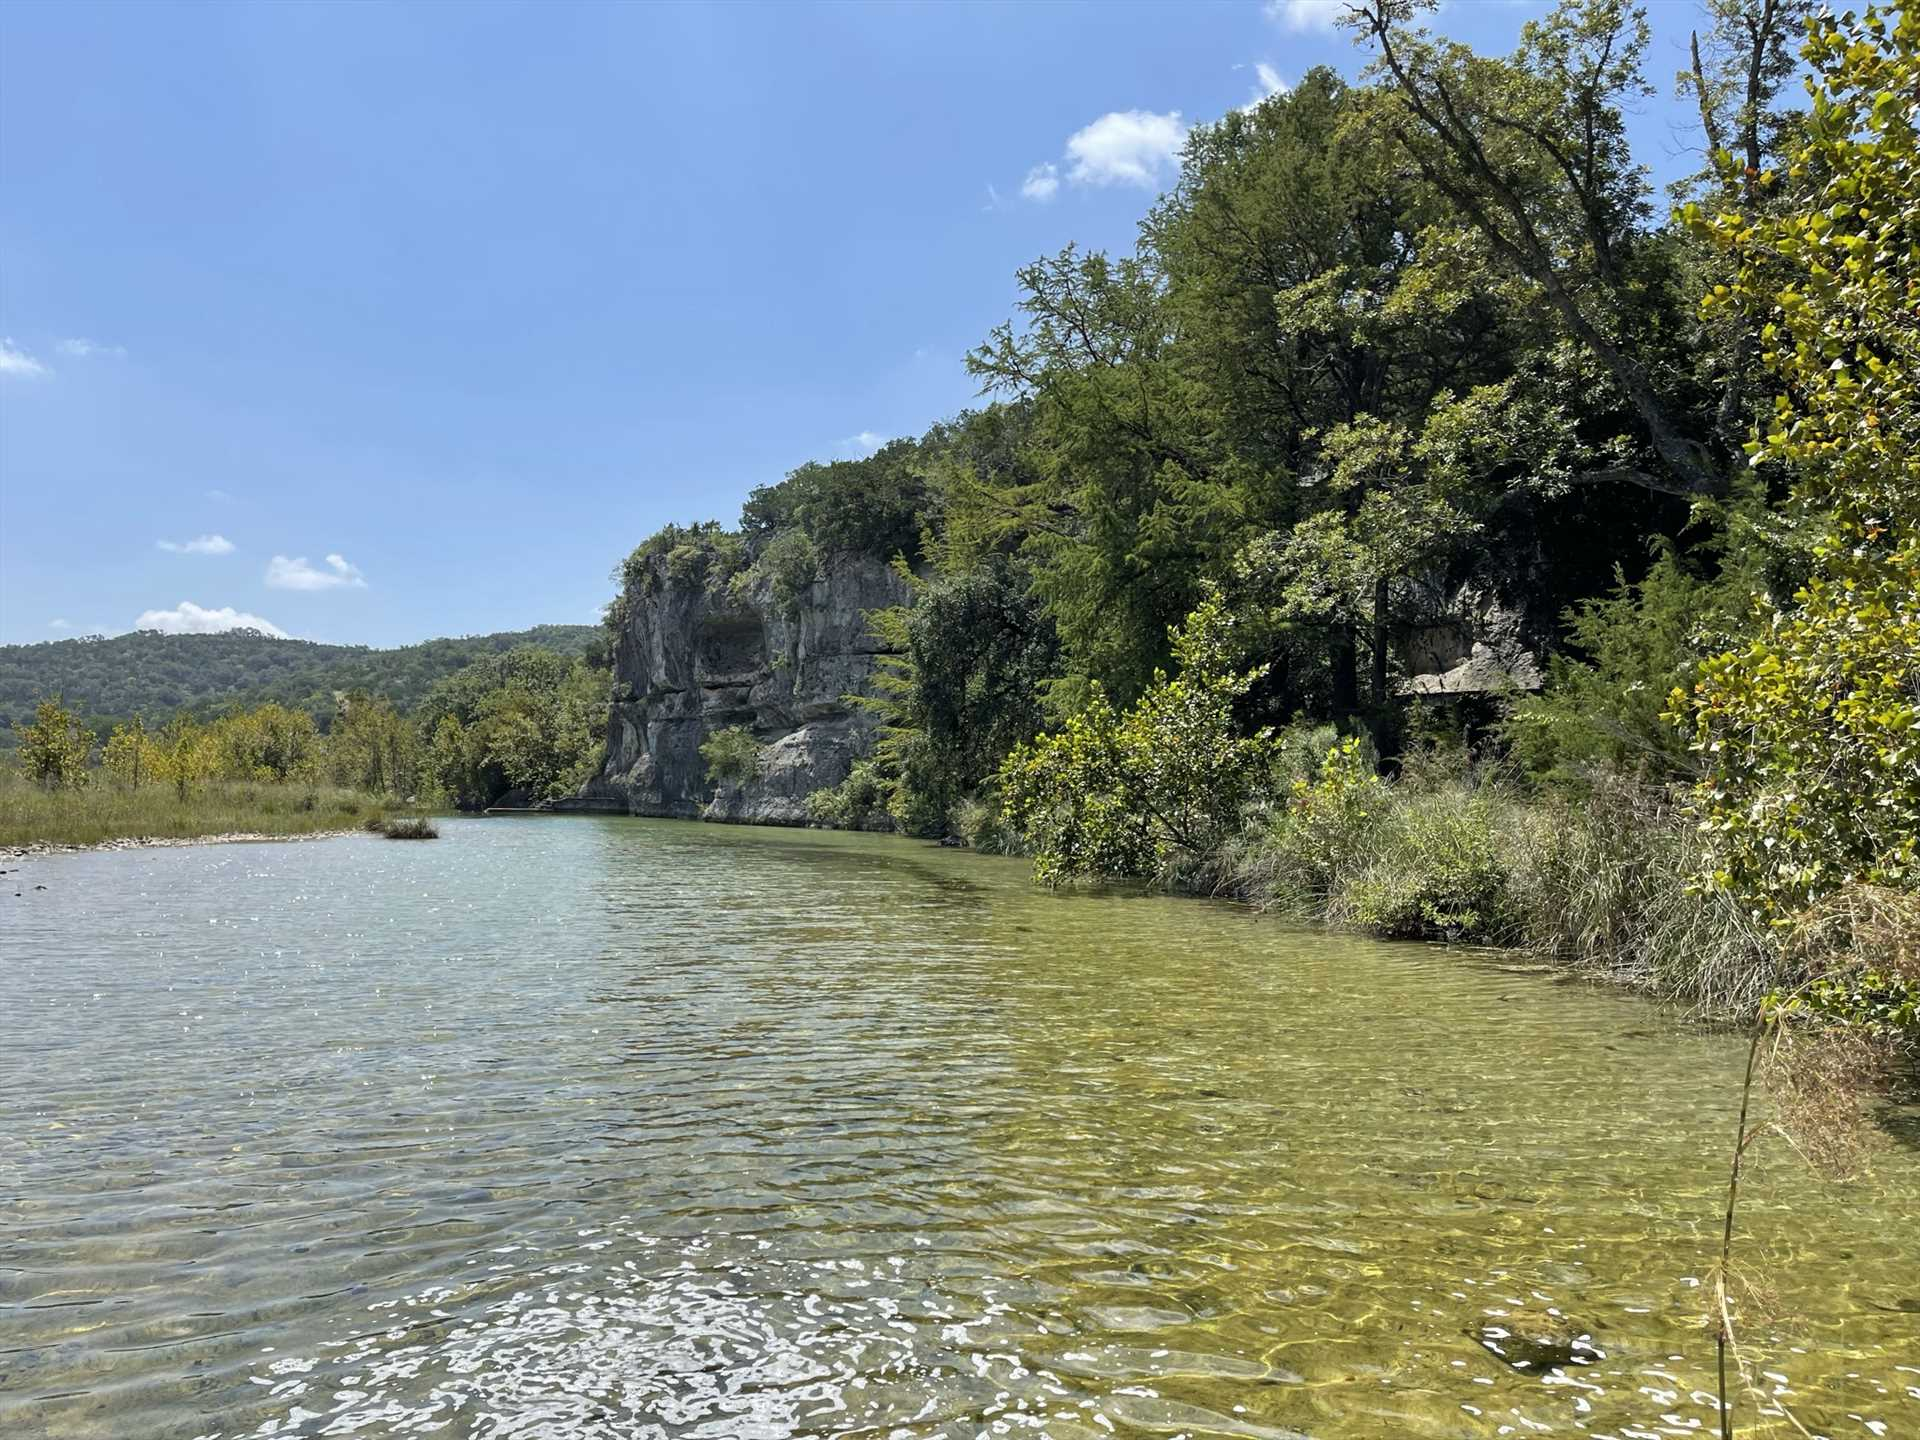 This scenic stretch of the Dry Frio has been dammed to create a swimming hole just for our guests-and check out those amazing mountain views!